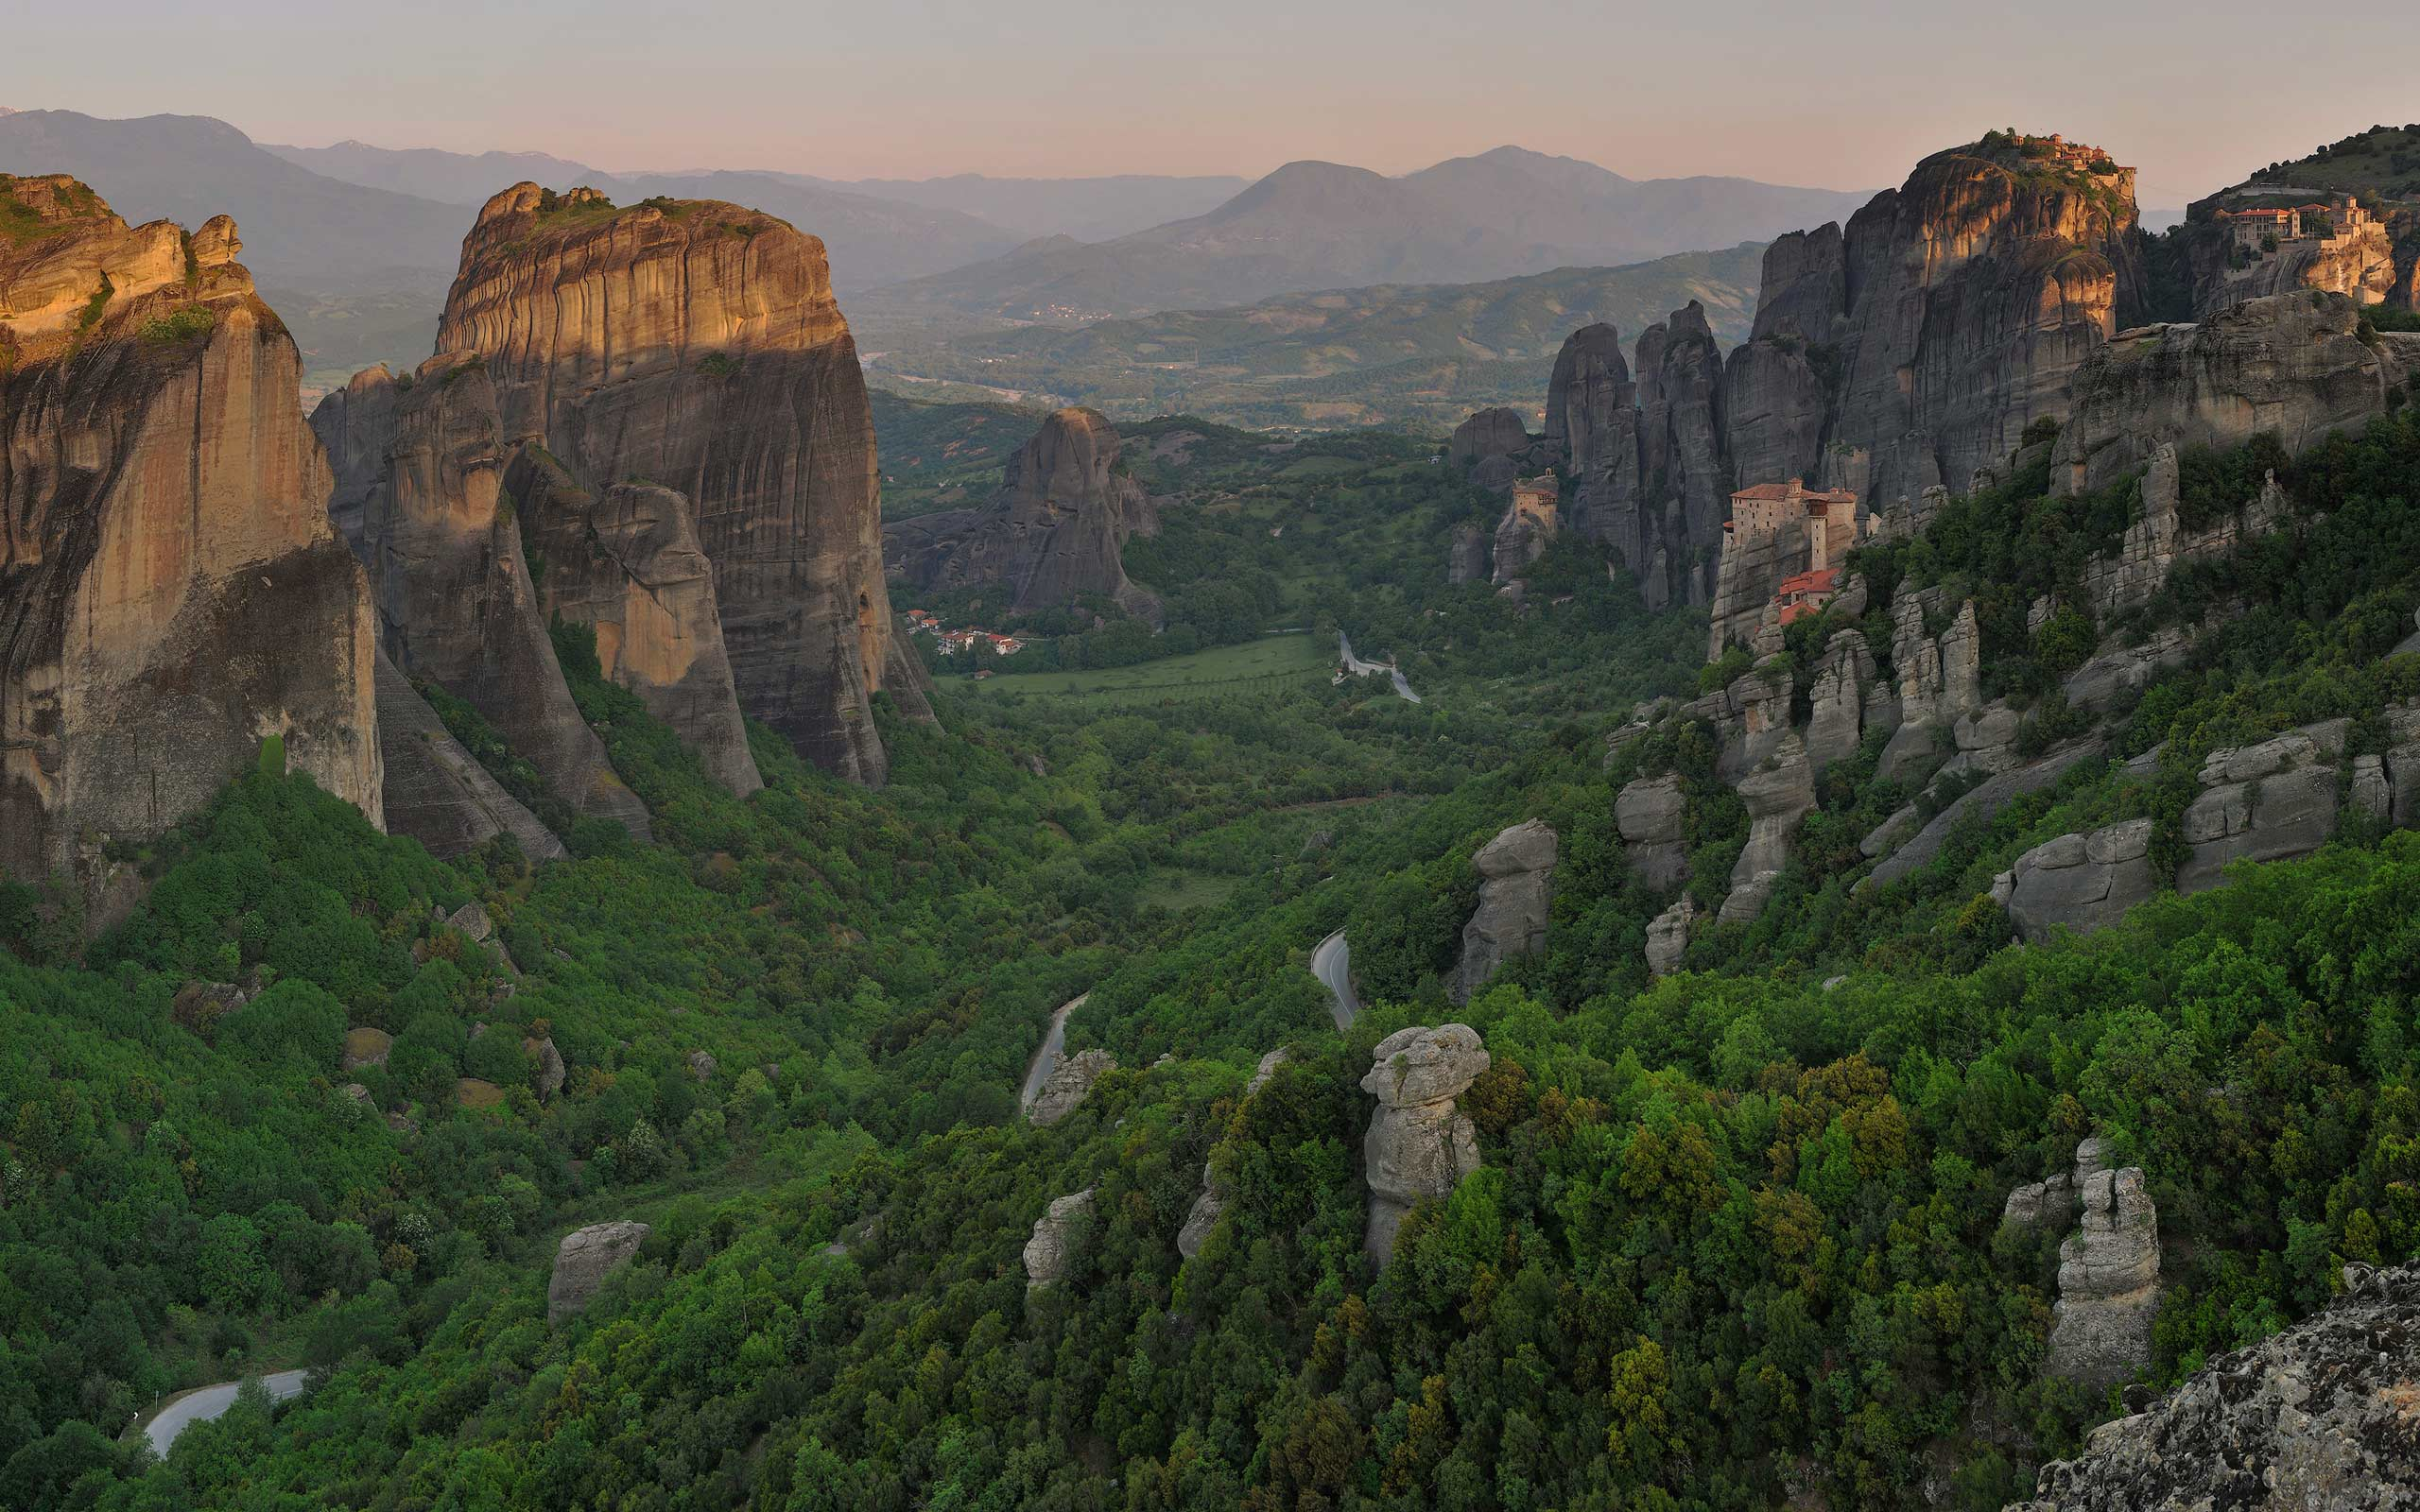 Sunrise at Meteora, Thessaly, Greece - Meteora-Monasteries-Greece - Mike Reyfman Photography